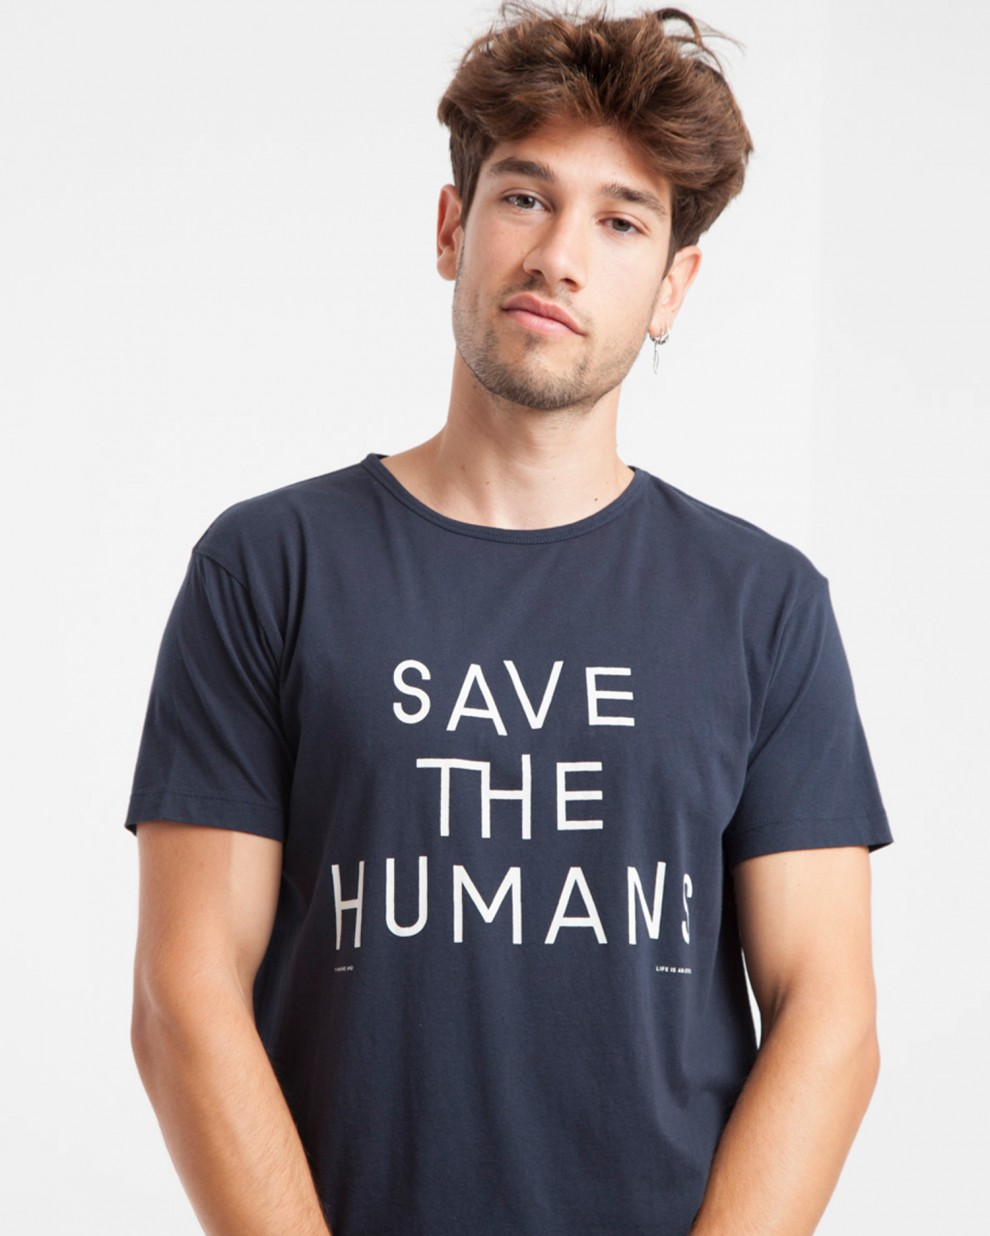 Save the humans Tee